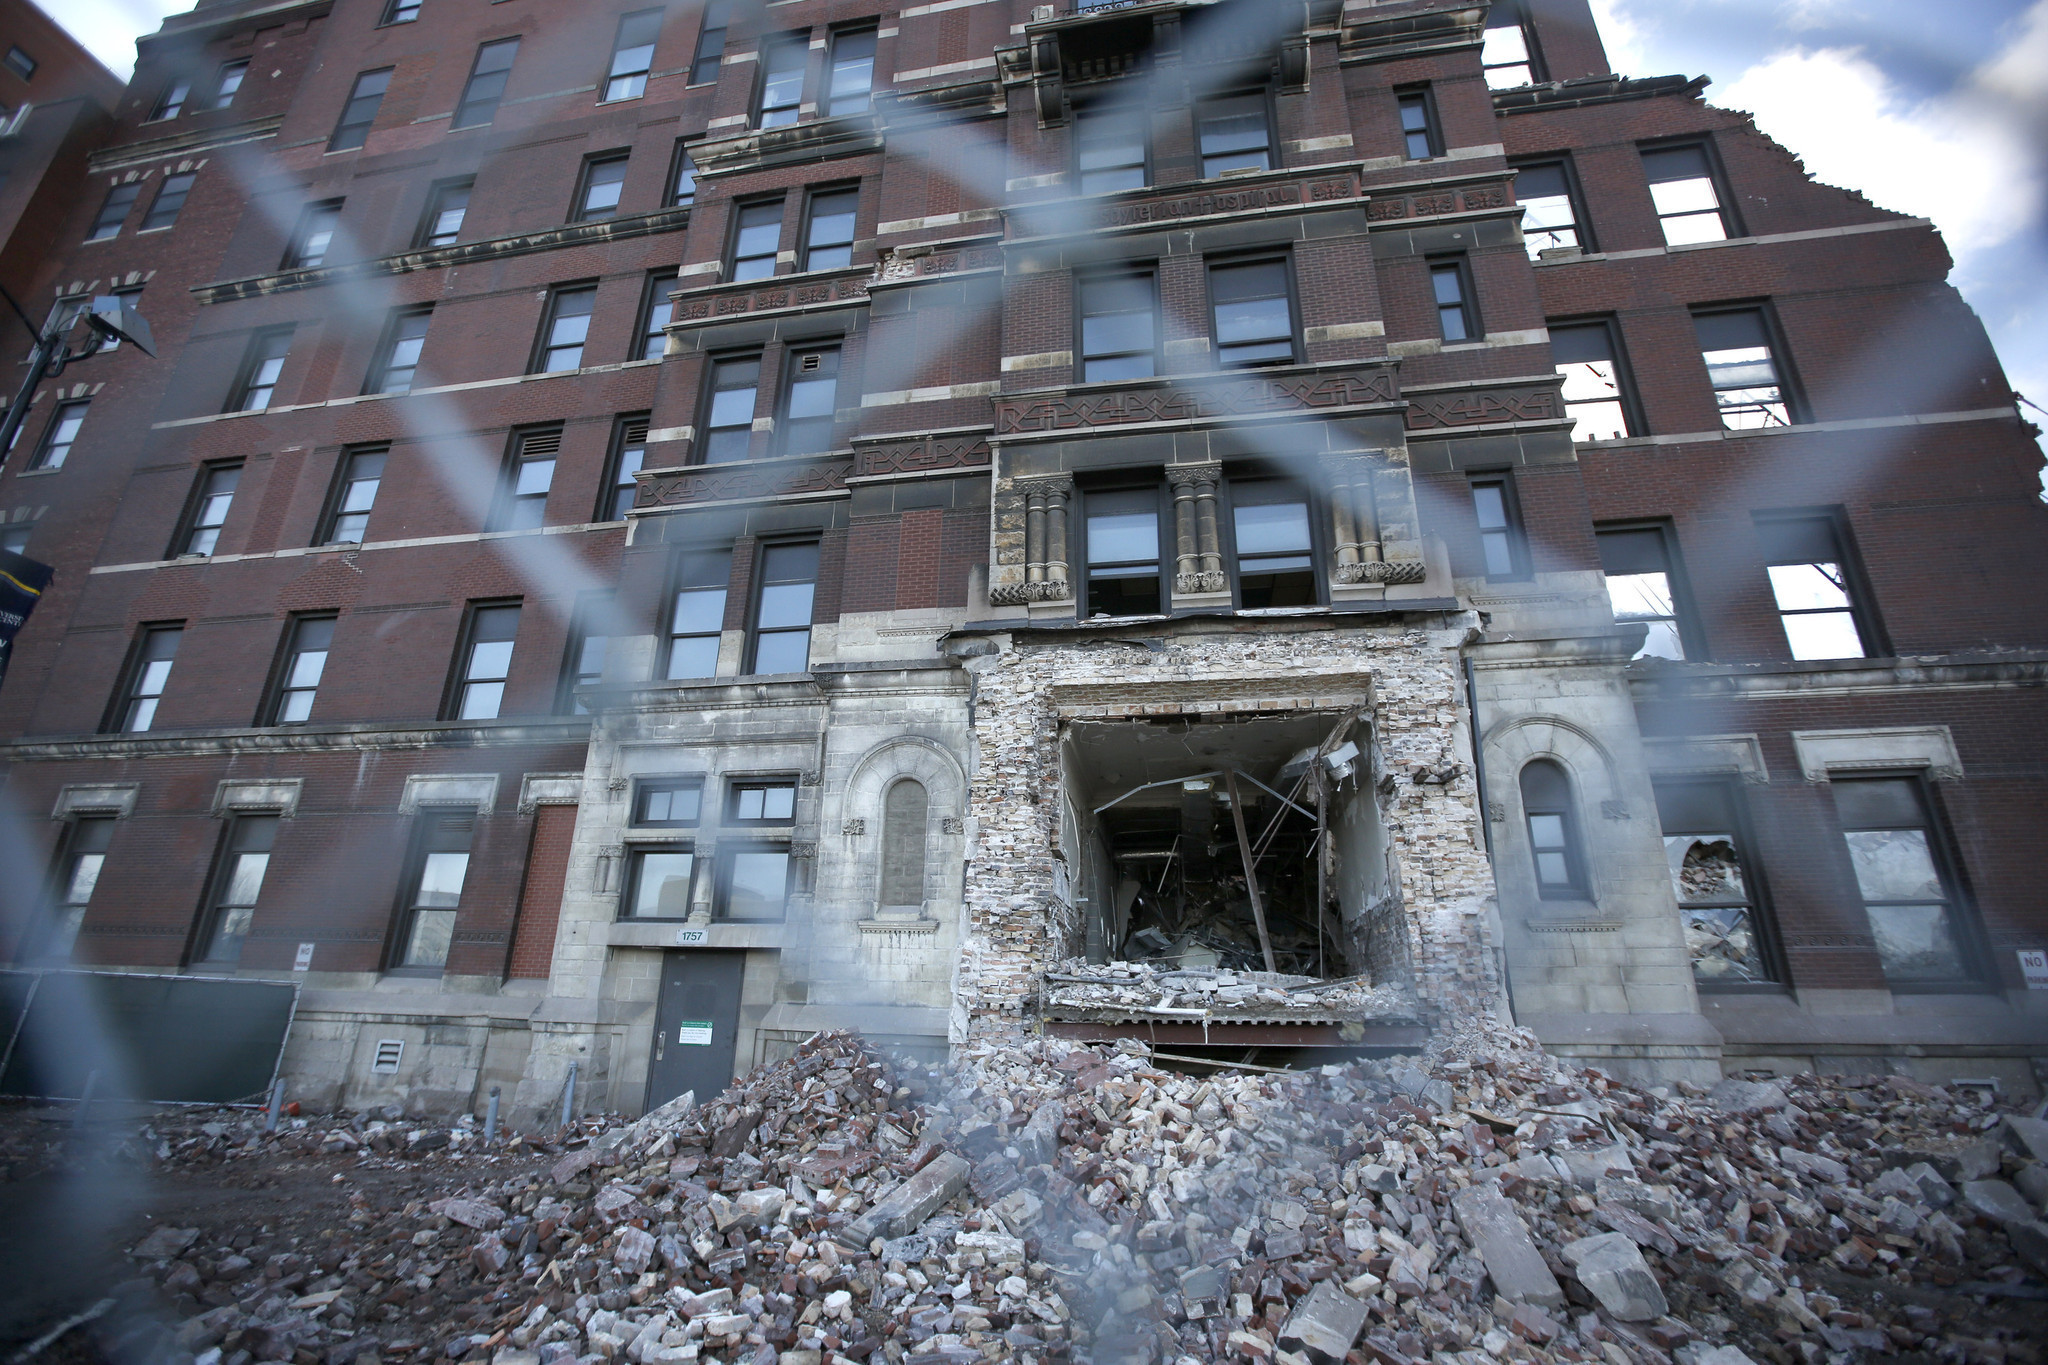 Medical Alert Reviews >> Turn-of-the-century era buildings demolished - Chicago Tribune